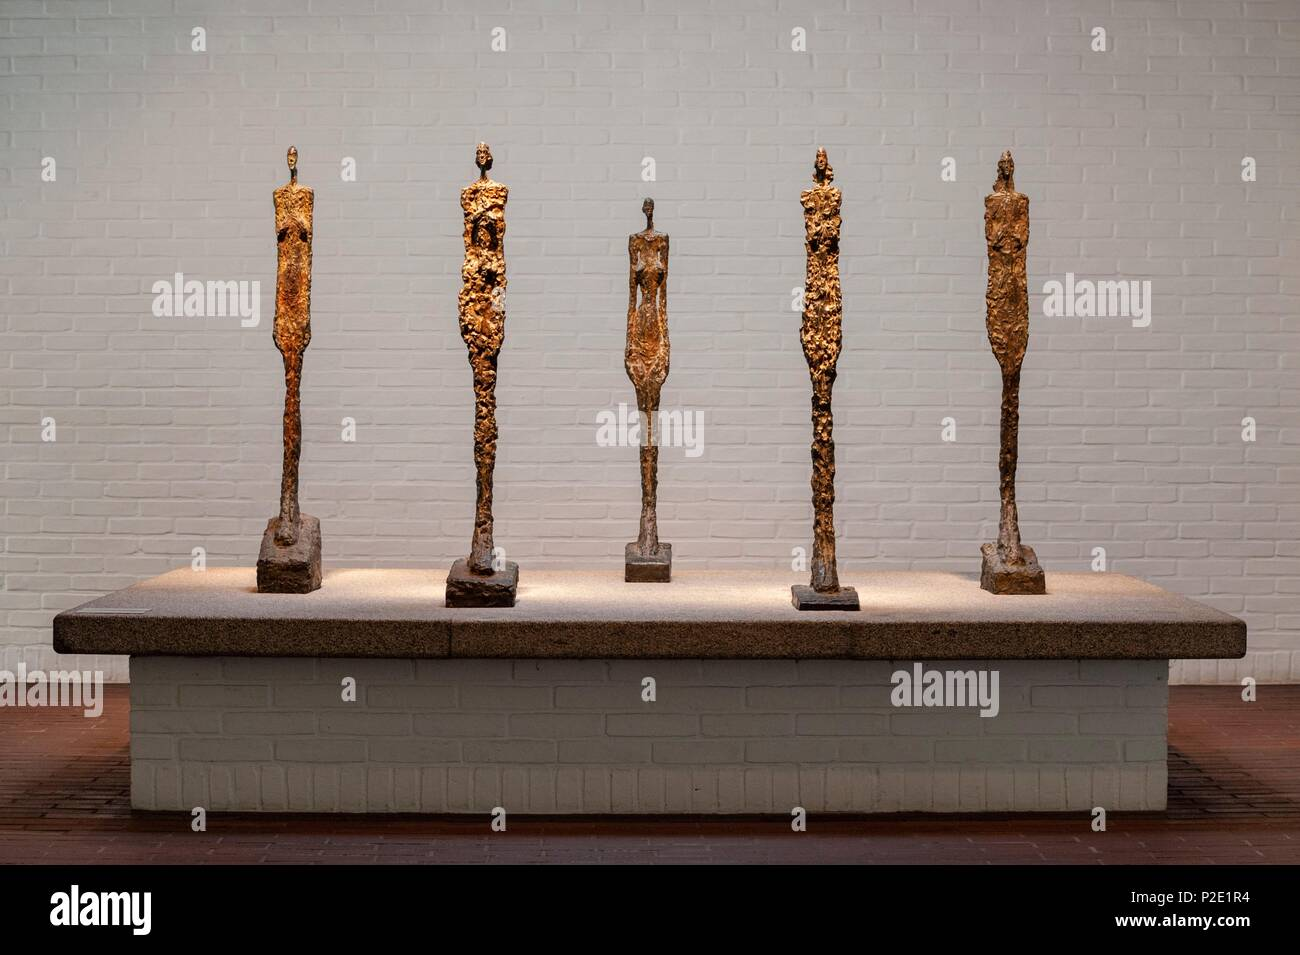 Denmark, Seeland, Humlebaek, Louisiana Museum of Modern Art designed by architects Jørgen Bo and Wilhlem Wohlert and inaugurated in 1959, statues by Alberto Giacometti - Stock Image